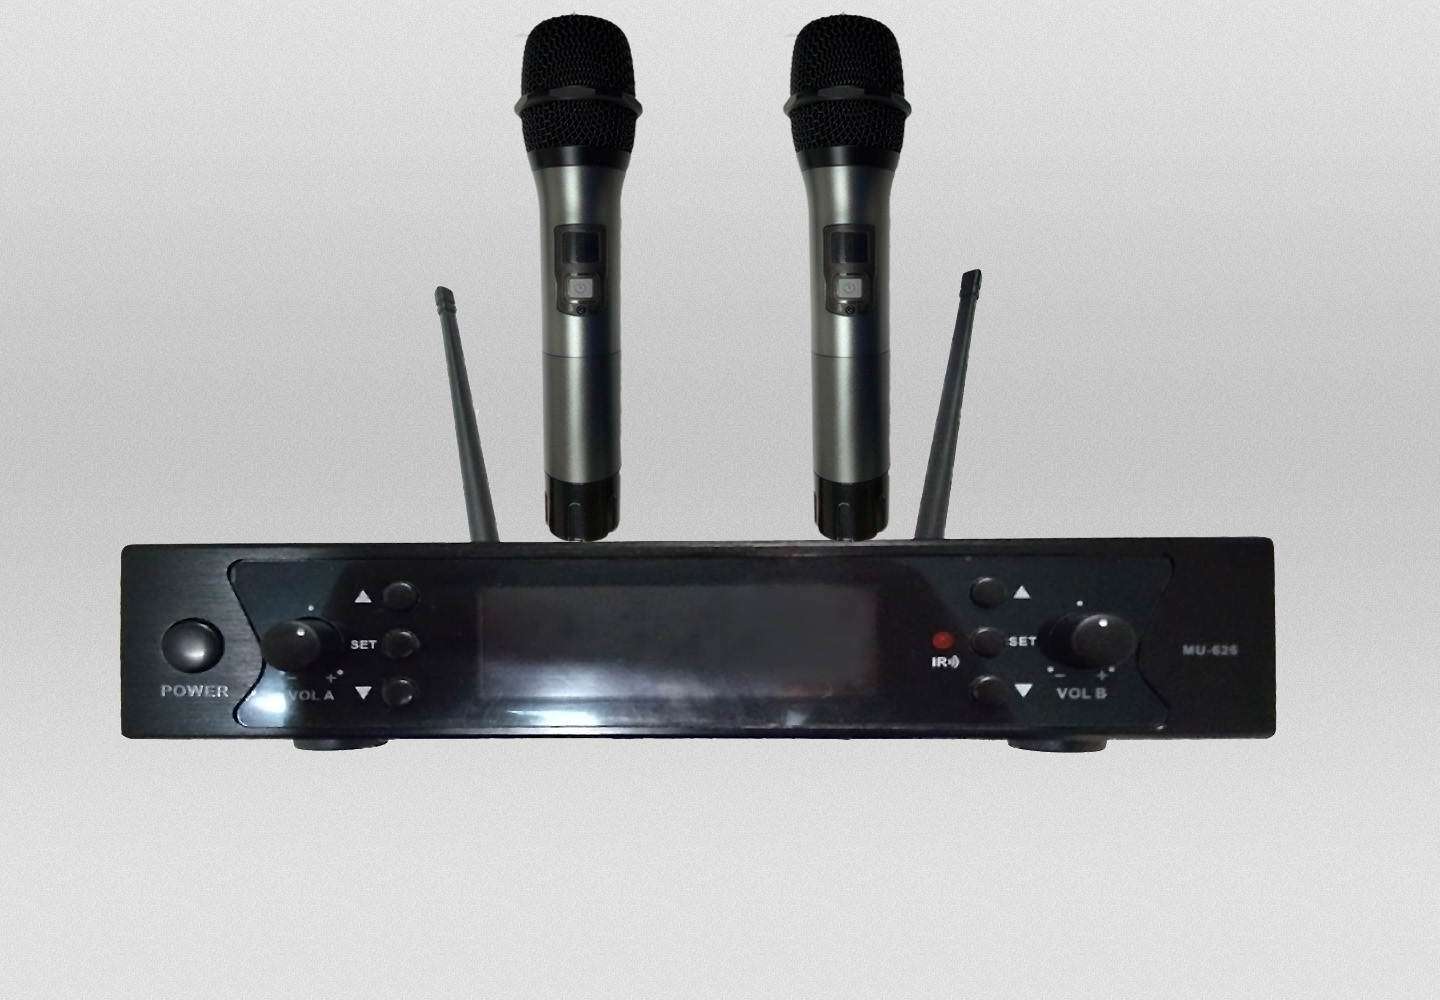 UHF 900 MHz Wireless Microphone eX-7